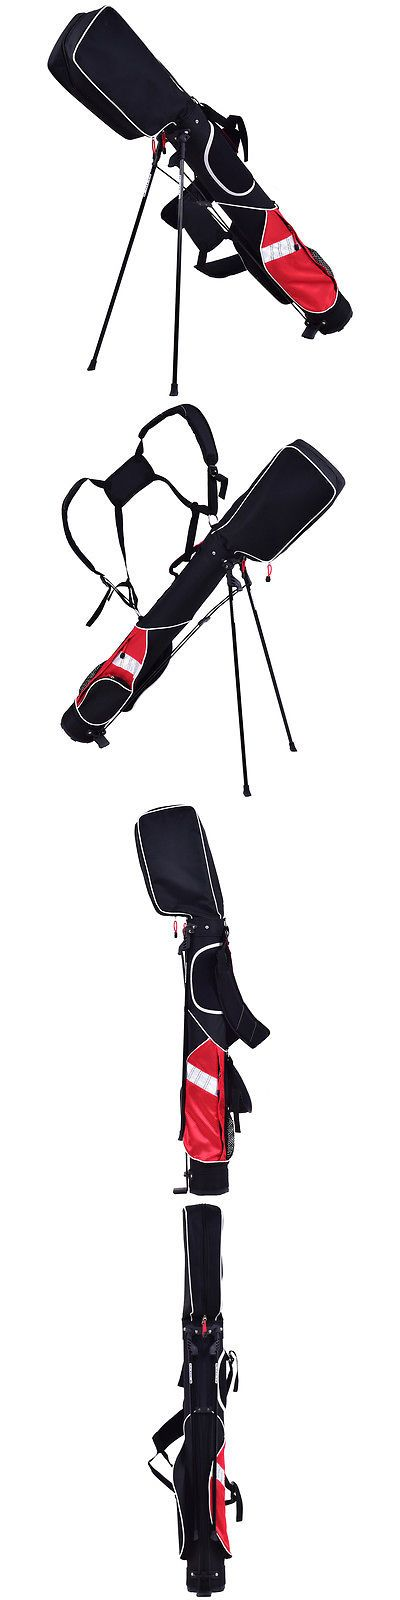 Golf Club Bags 30109: 5 Sunday Golf Bag Stand 7 Clubs Carry Pockets Travel Storage Lightweight New -> BUY IT NOW ONLY: $32.99 on eBay!